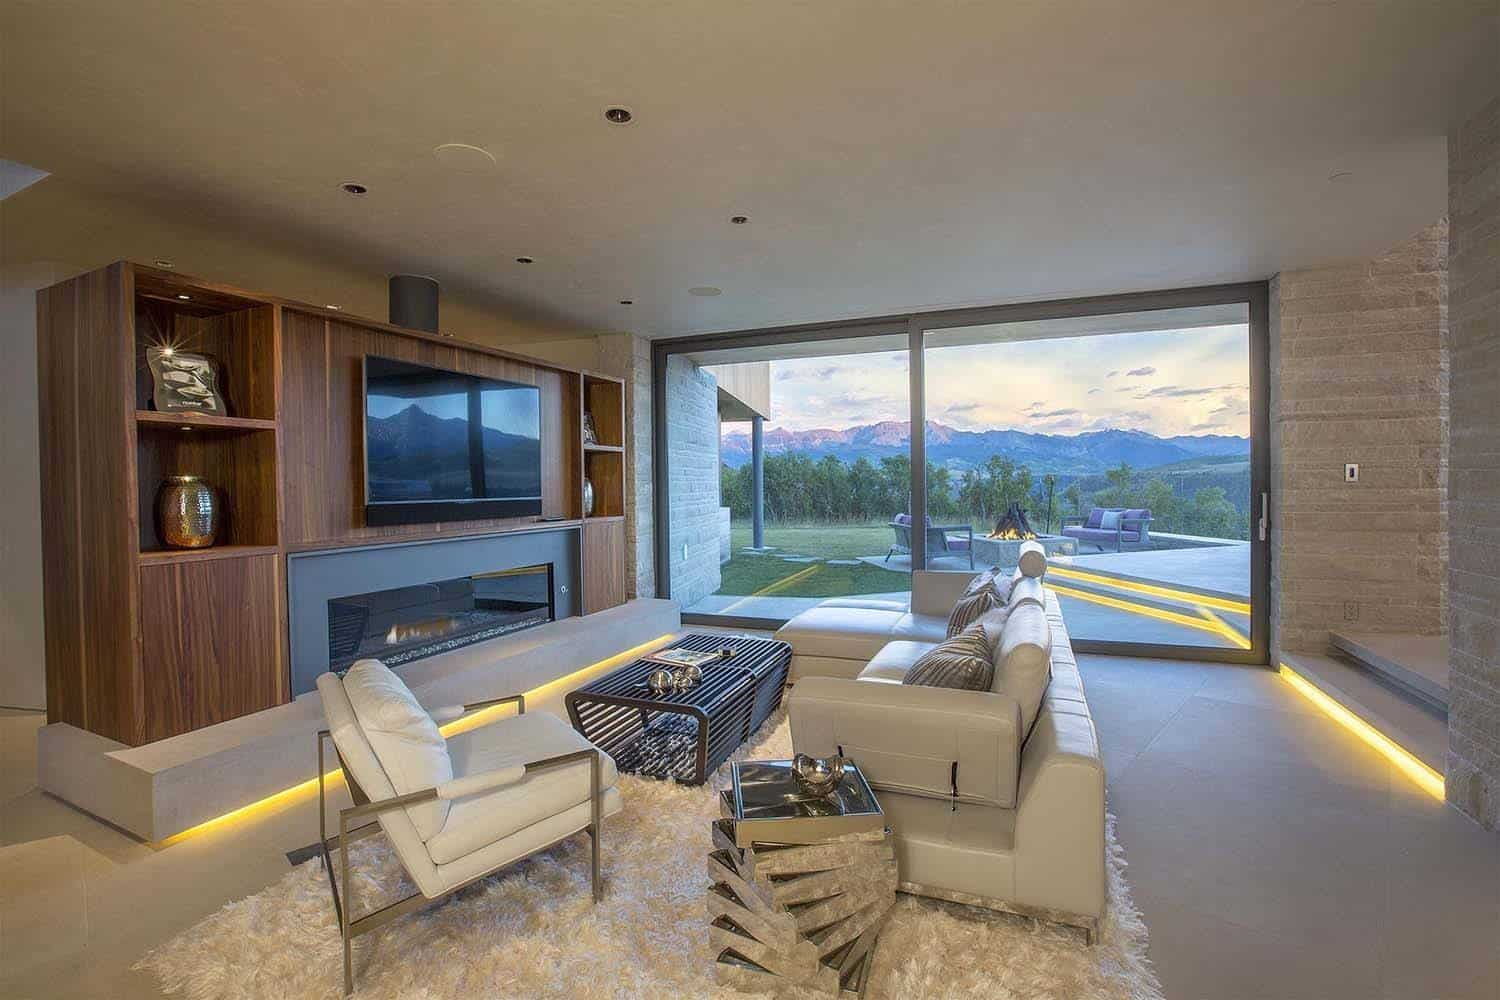 Modern-Residence-Colorado-Poss Architecture-25-1 Kindesign